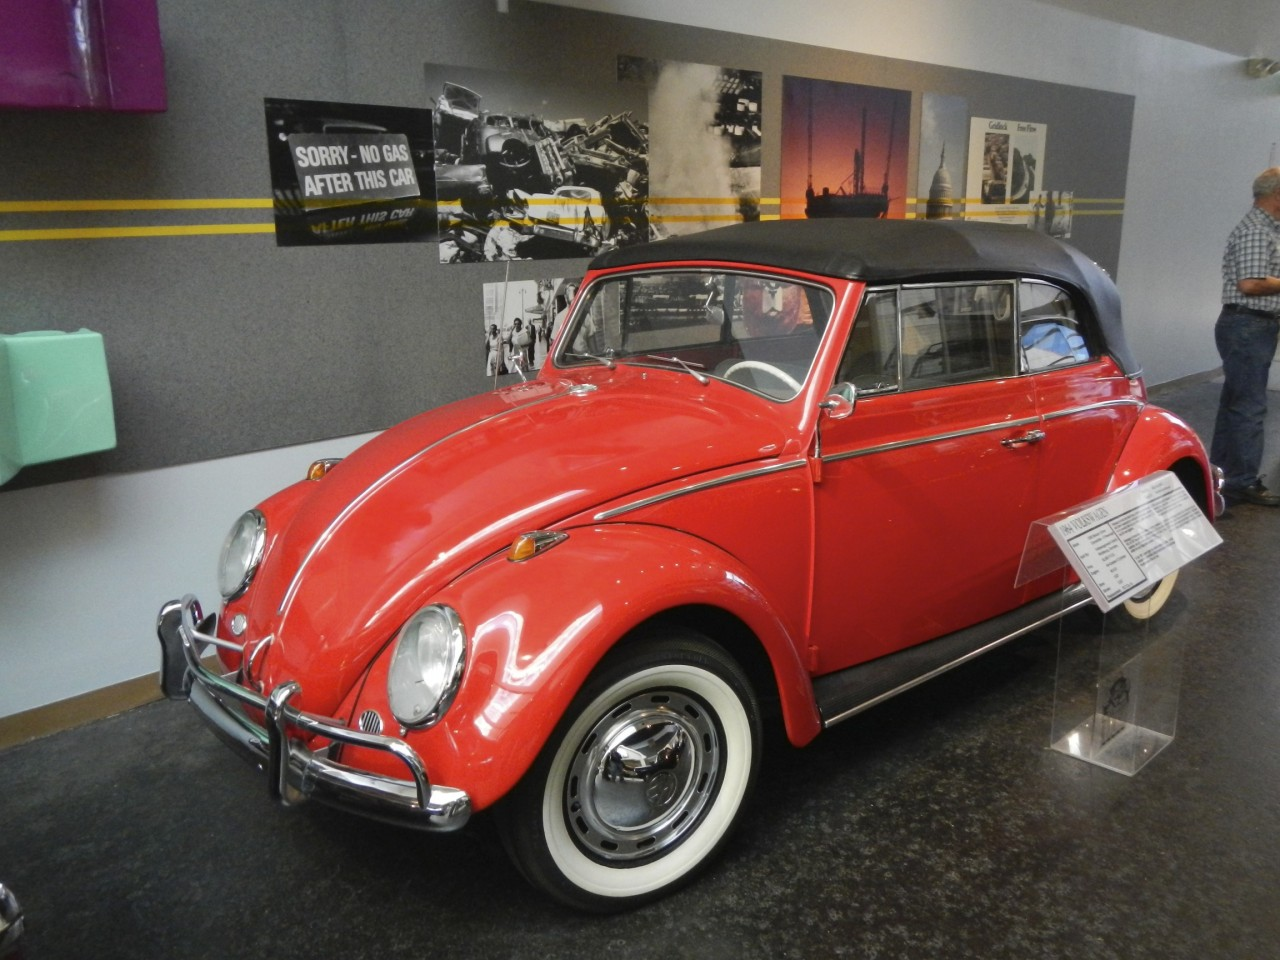 The Original VW Punch Buggy